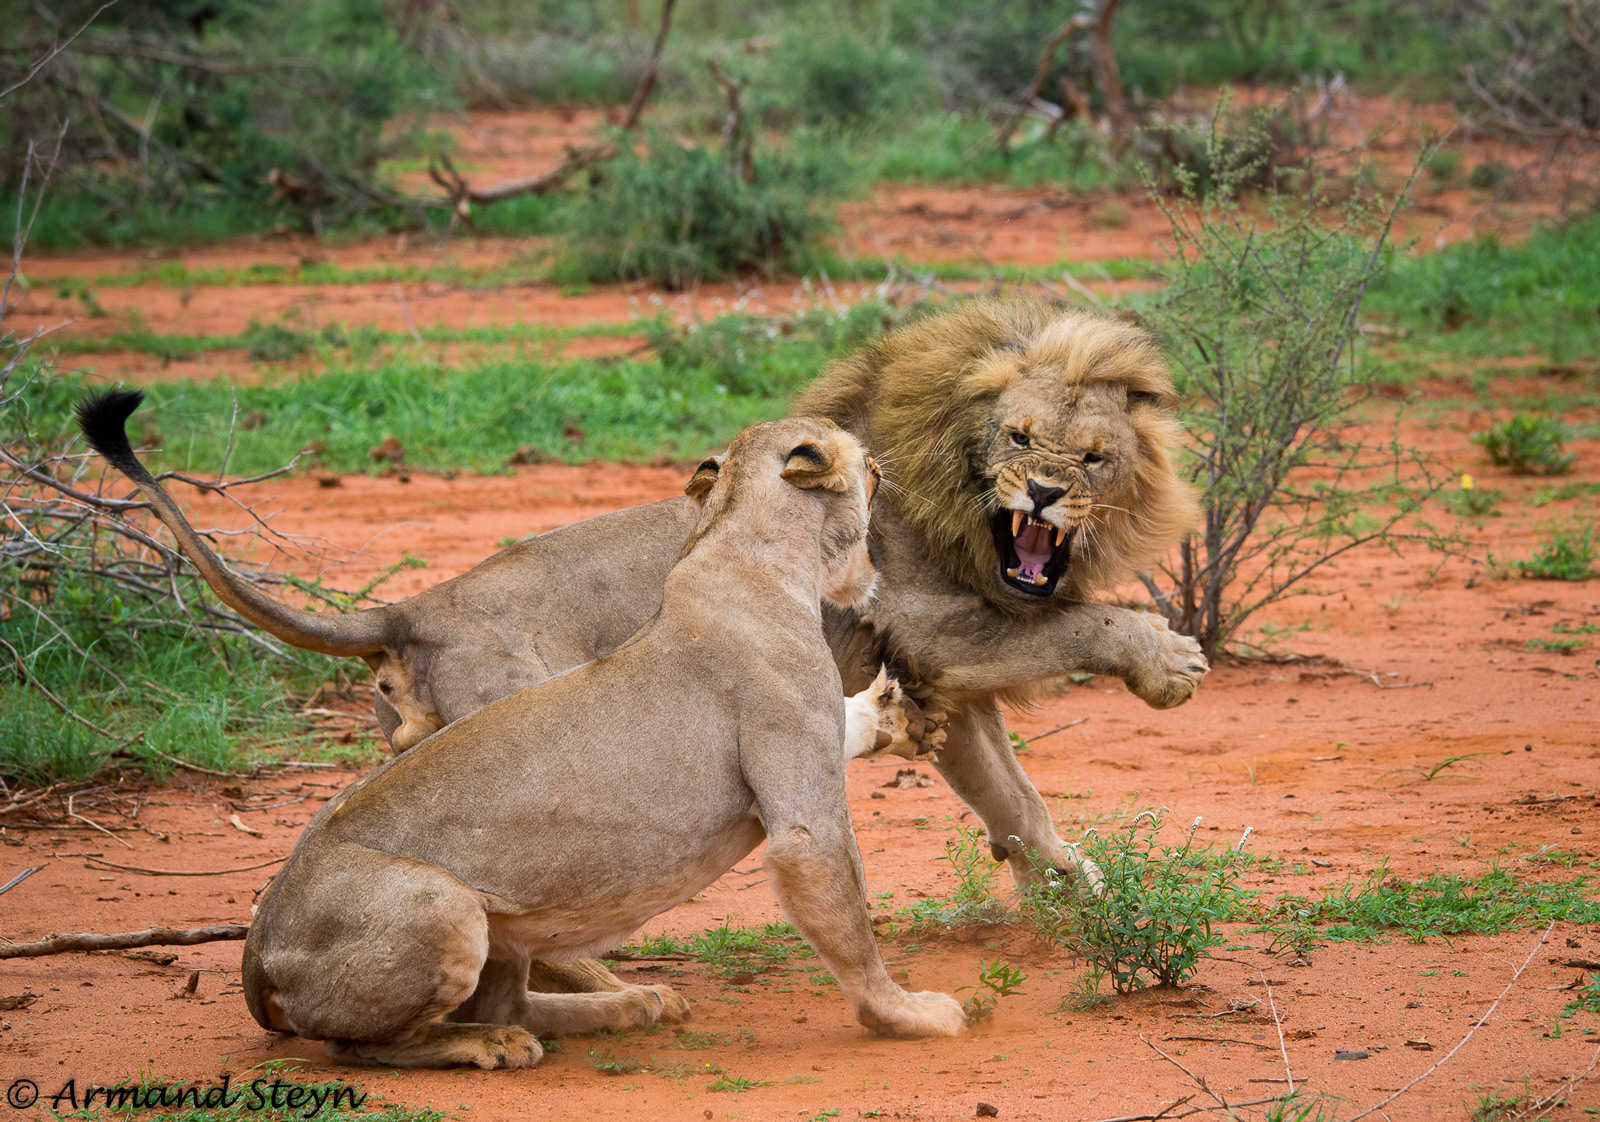 A lion and lioness bring out the claws after mating. Madikwe Game Reserve, South Africa © Armand Steyn